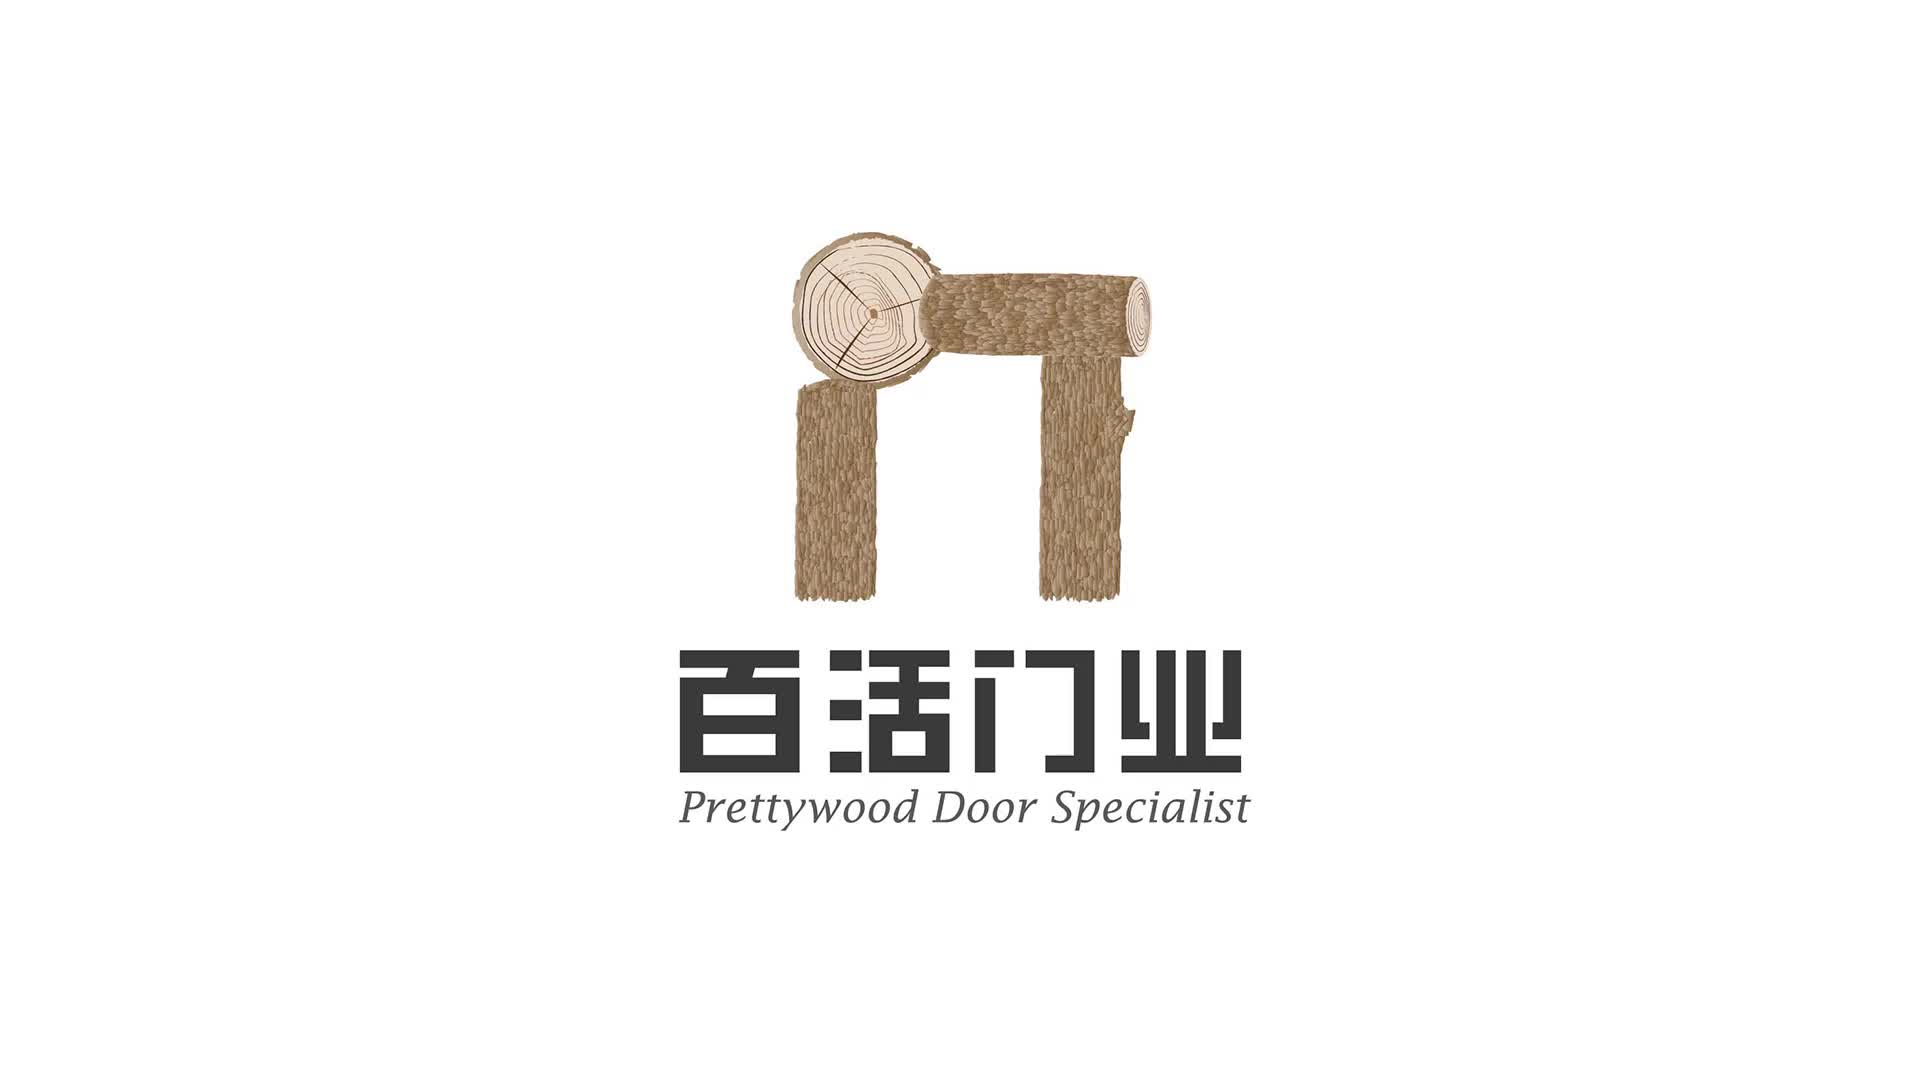 Prettywood Home Exterior Front Main Entry Solid Core Design Modern Pivot Wooden Doors